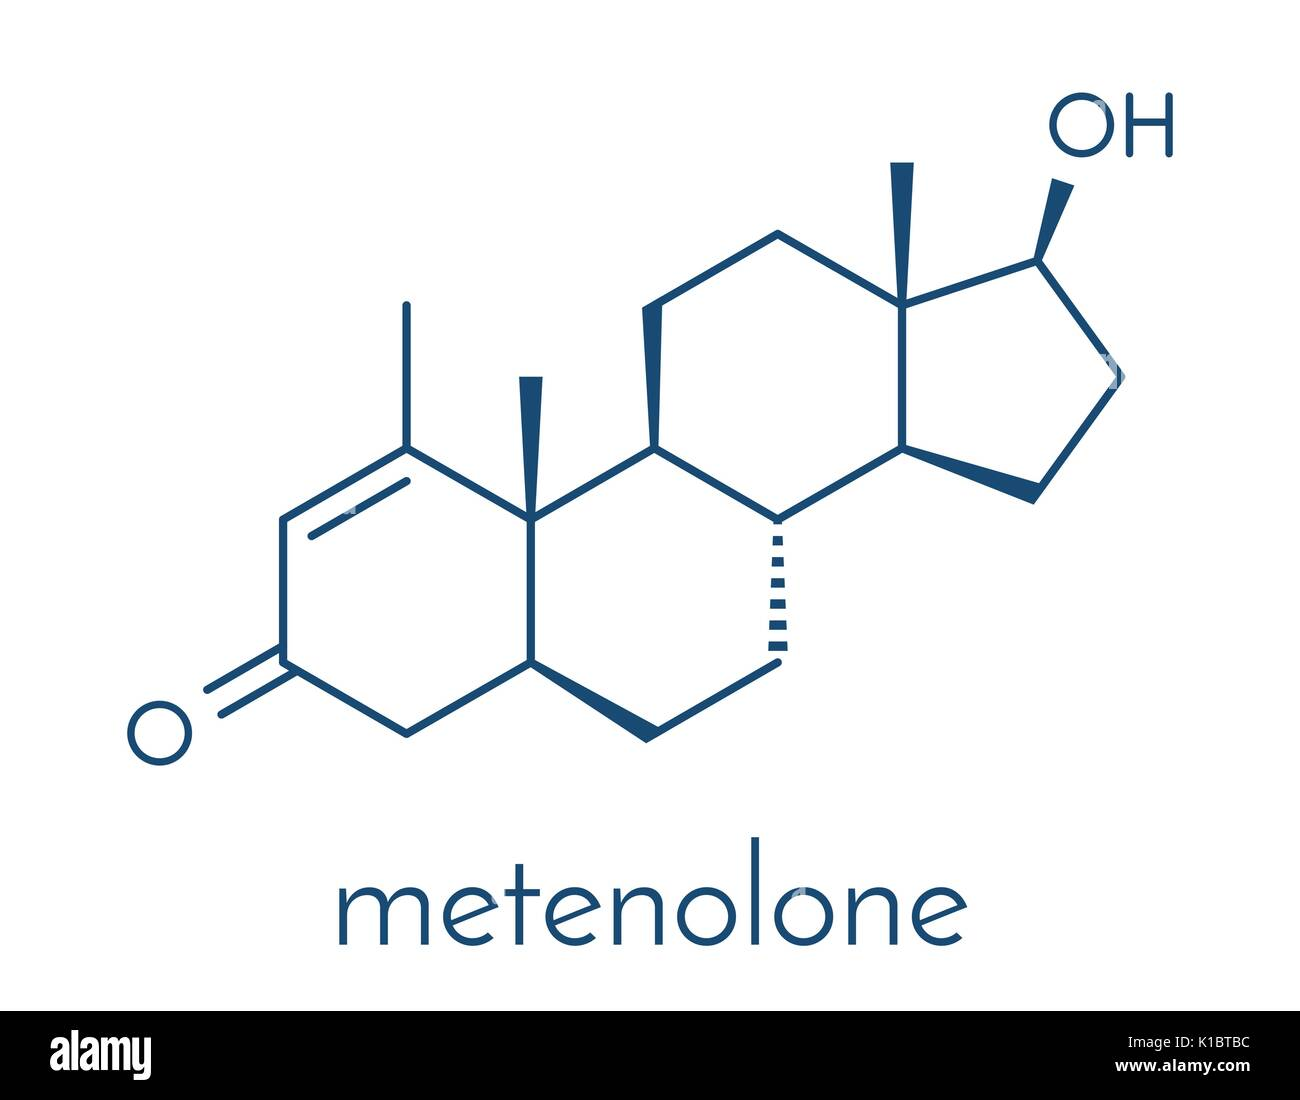 Metenolone anabolic steroid molecule. Used (banned) in sports doping. Skeletal formula. Stock Vector